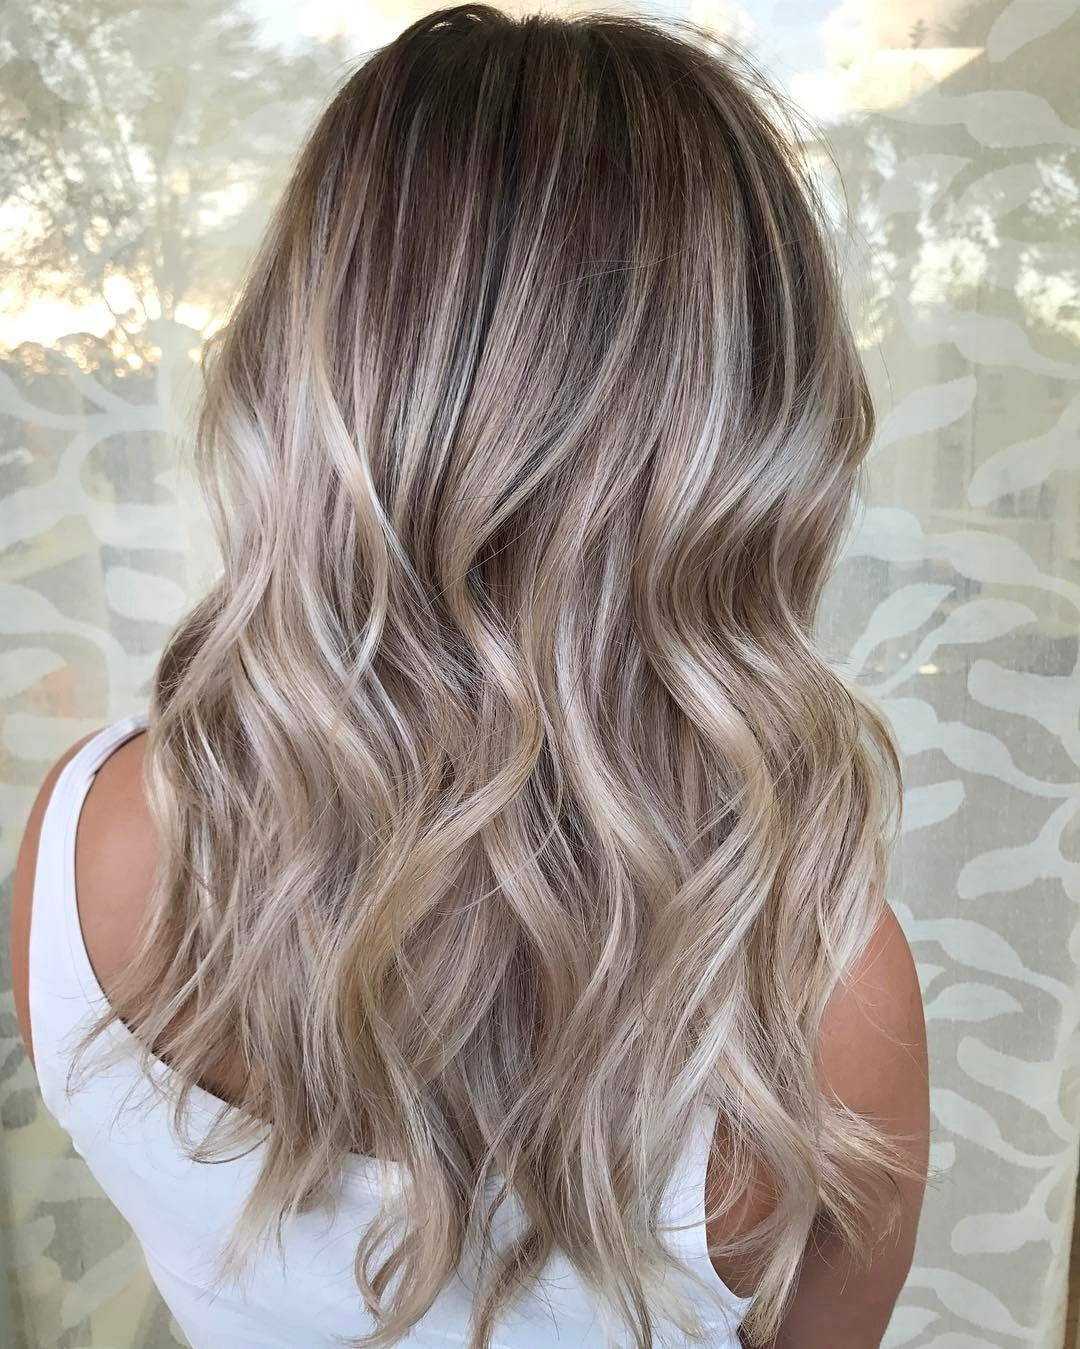 Balayage 2019: Pin By Linzi Nelson On Hair Color In 2019